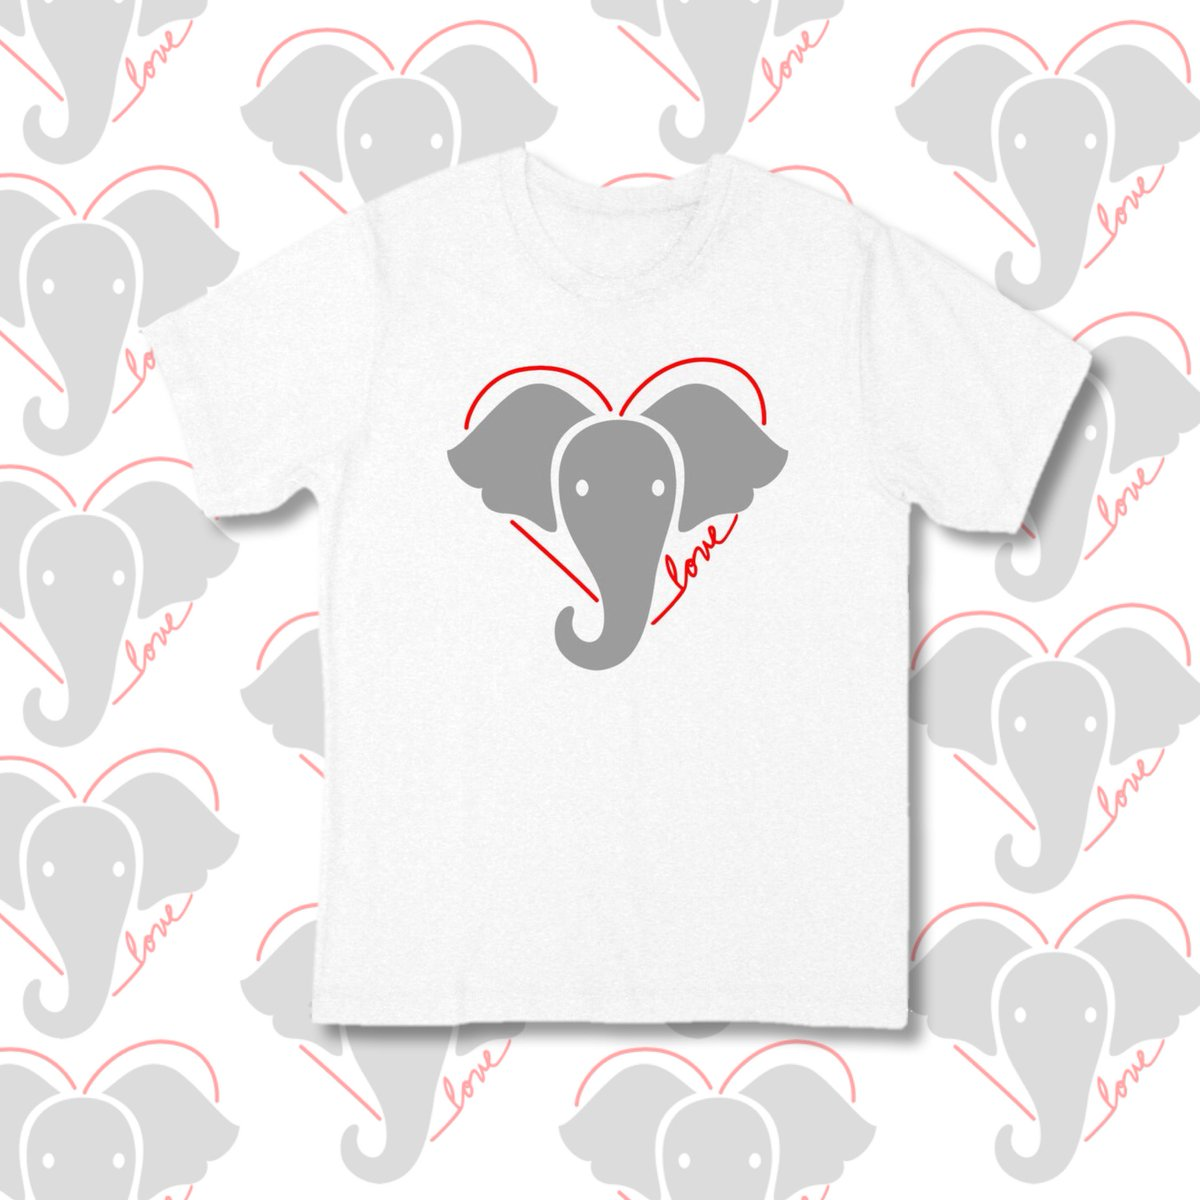 You can support elephants with this new ED by Ellen T-shirt. All of the net profits go to the David Sheldrick Wildlife Trust. @DSWT #BeKindToElephants EDbyEllen.com/ElephantTee